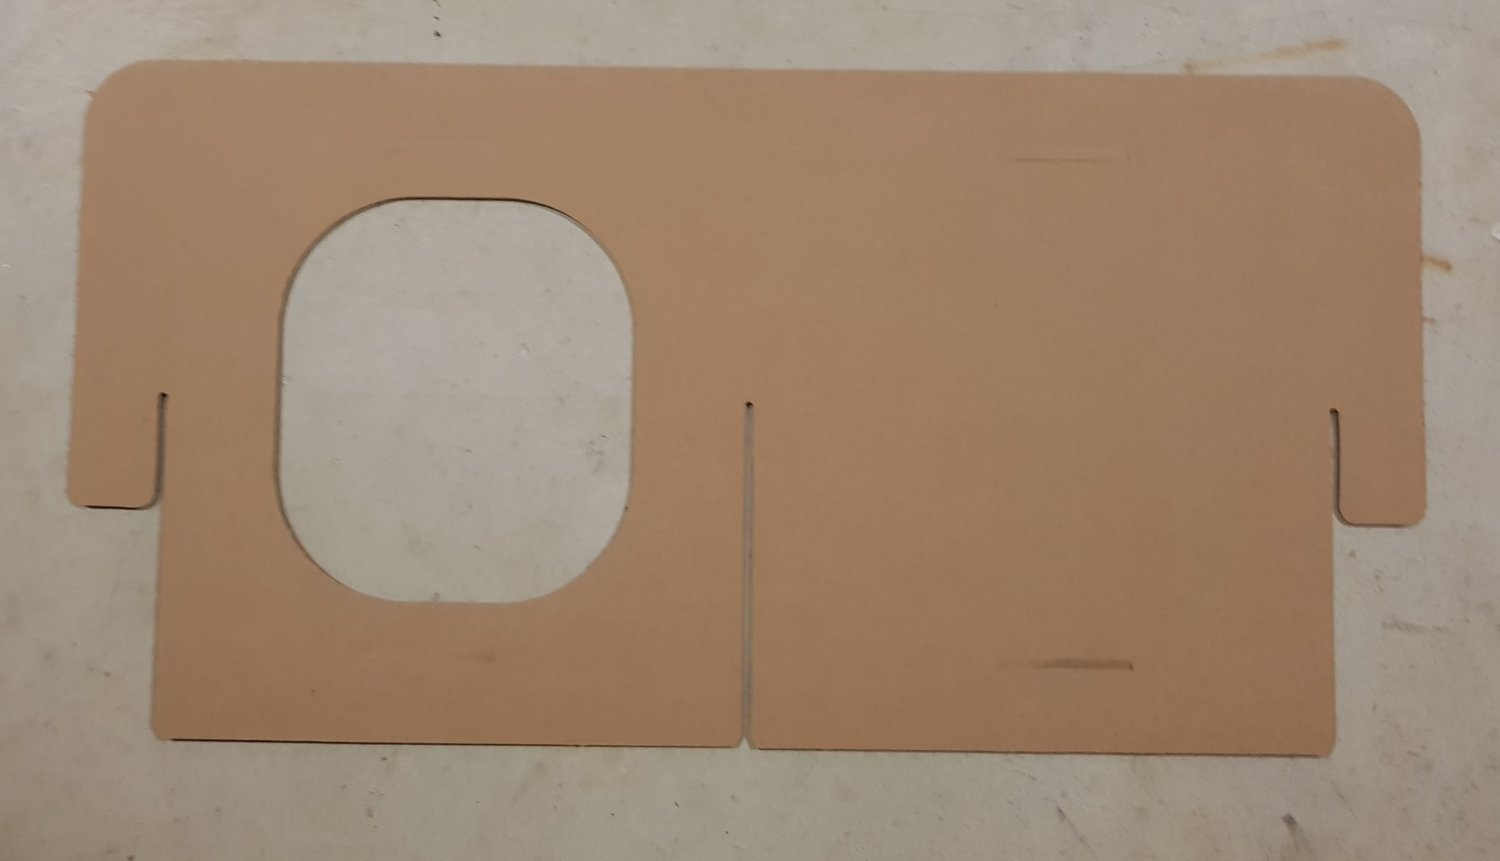 DIY Cardboard Panels (Sides/Middle)